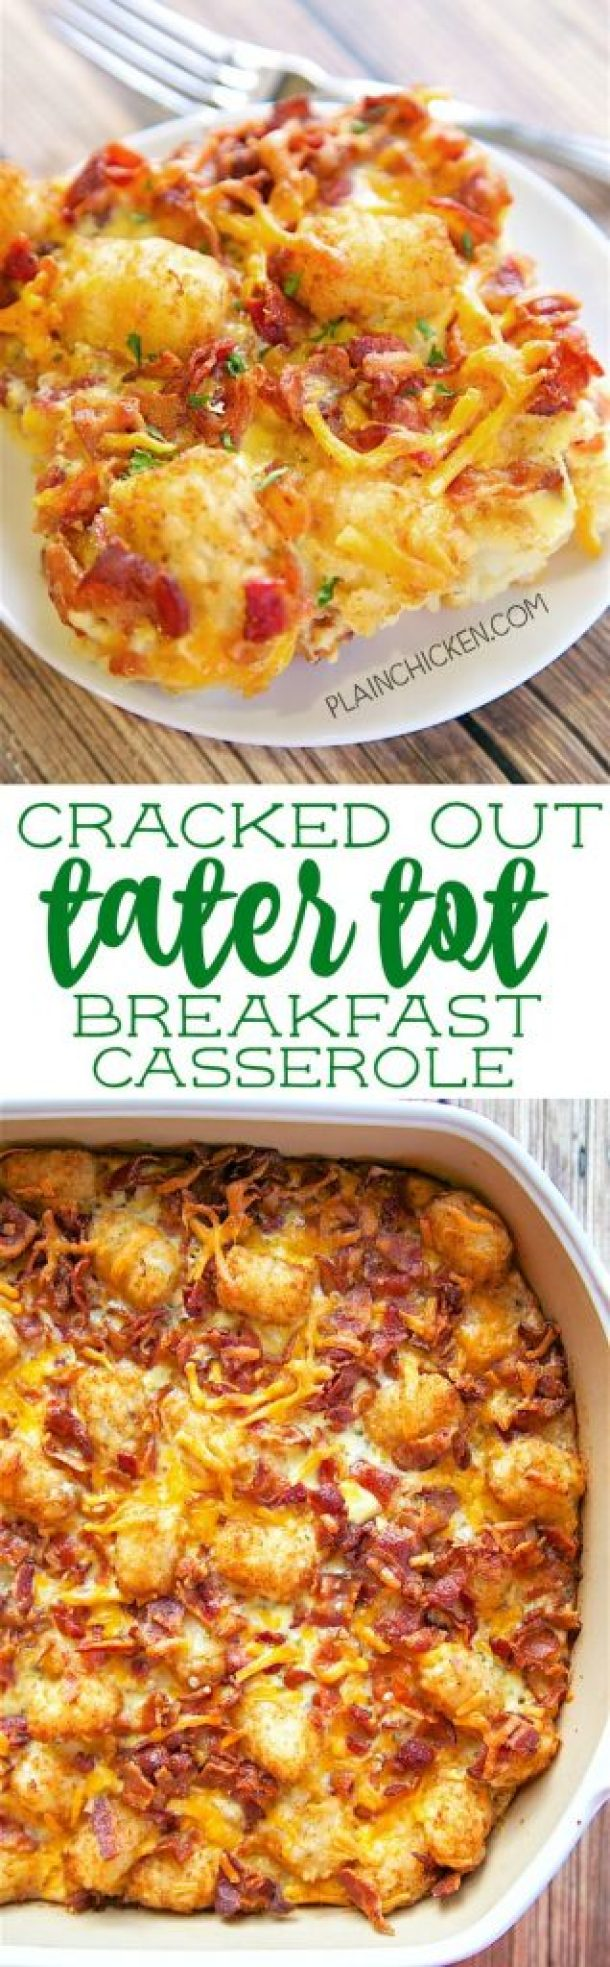 Cracked Out Tater Tot Breakfast Casserole Recipe | Plain Chicken